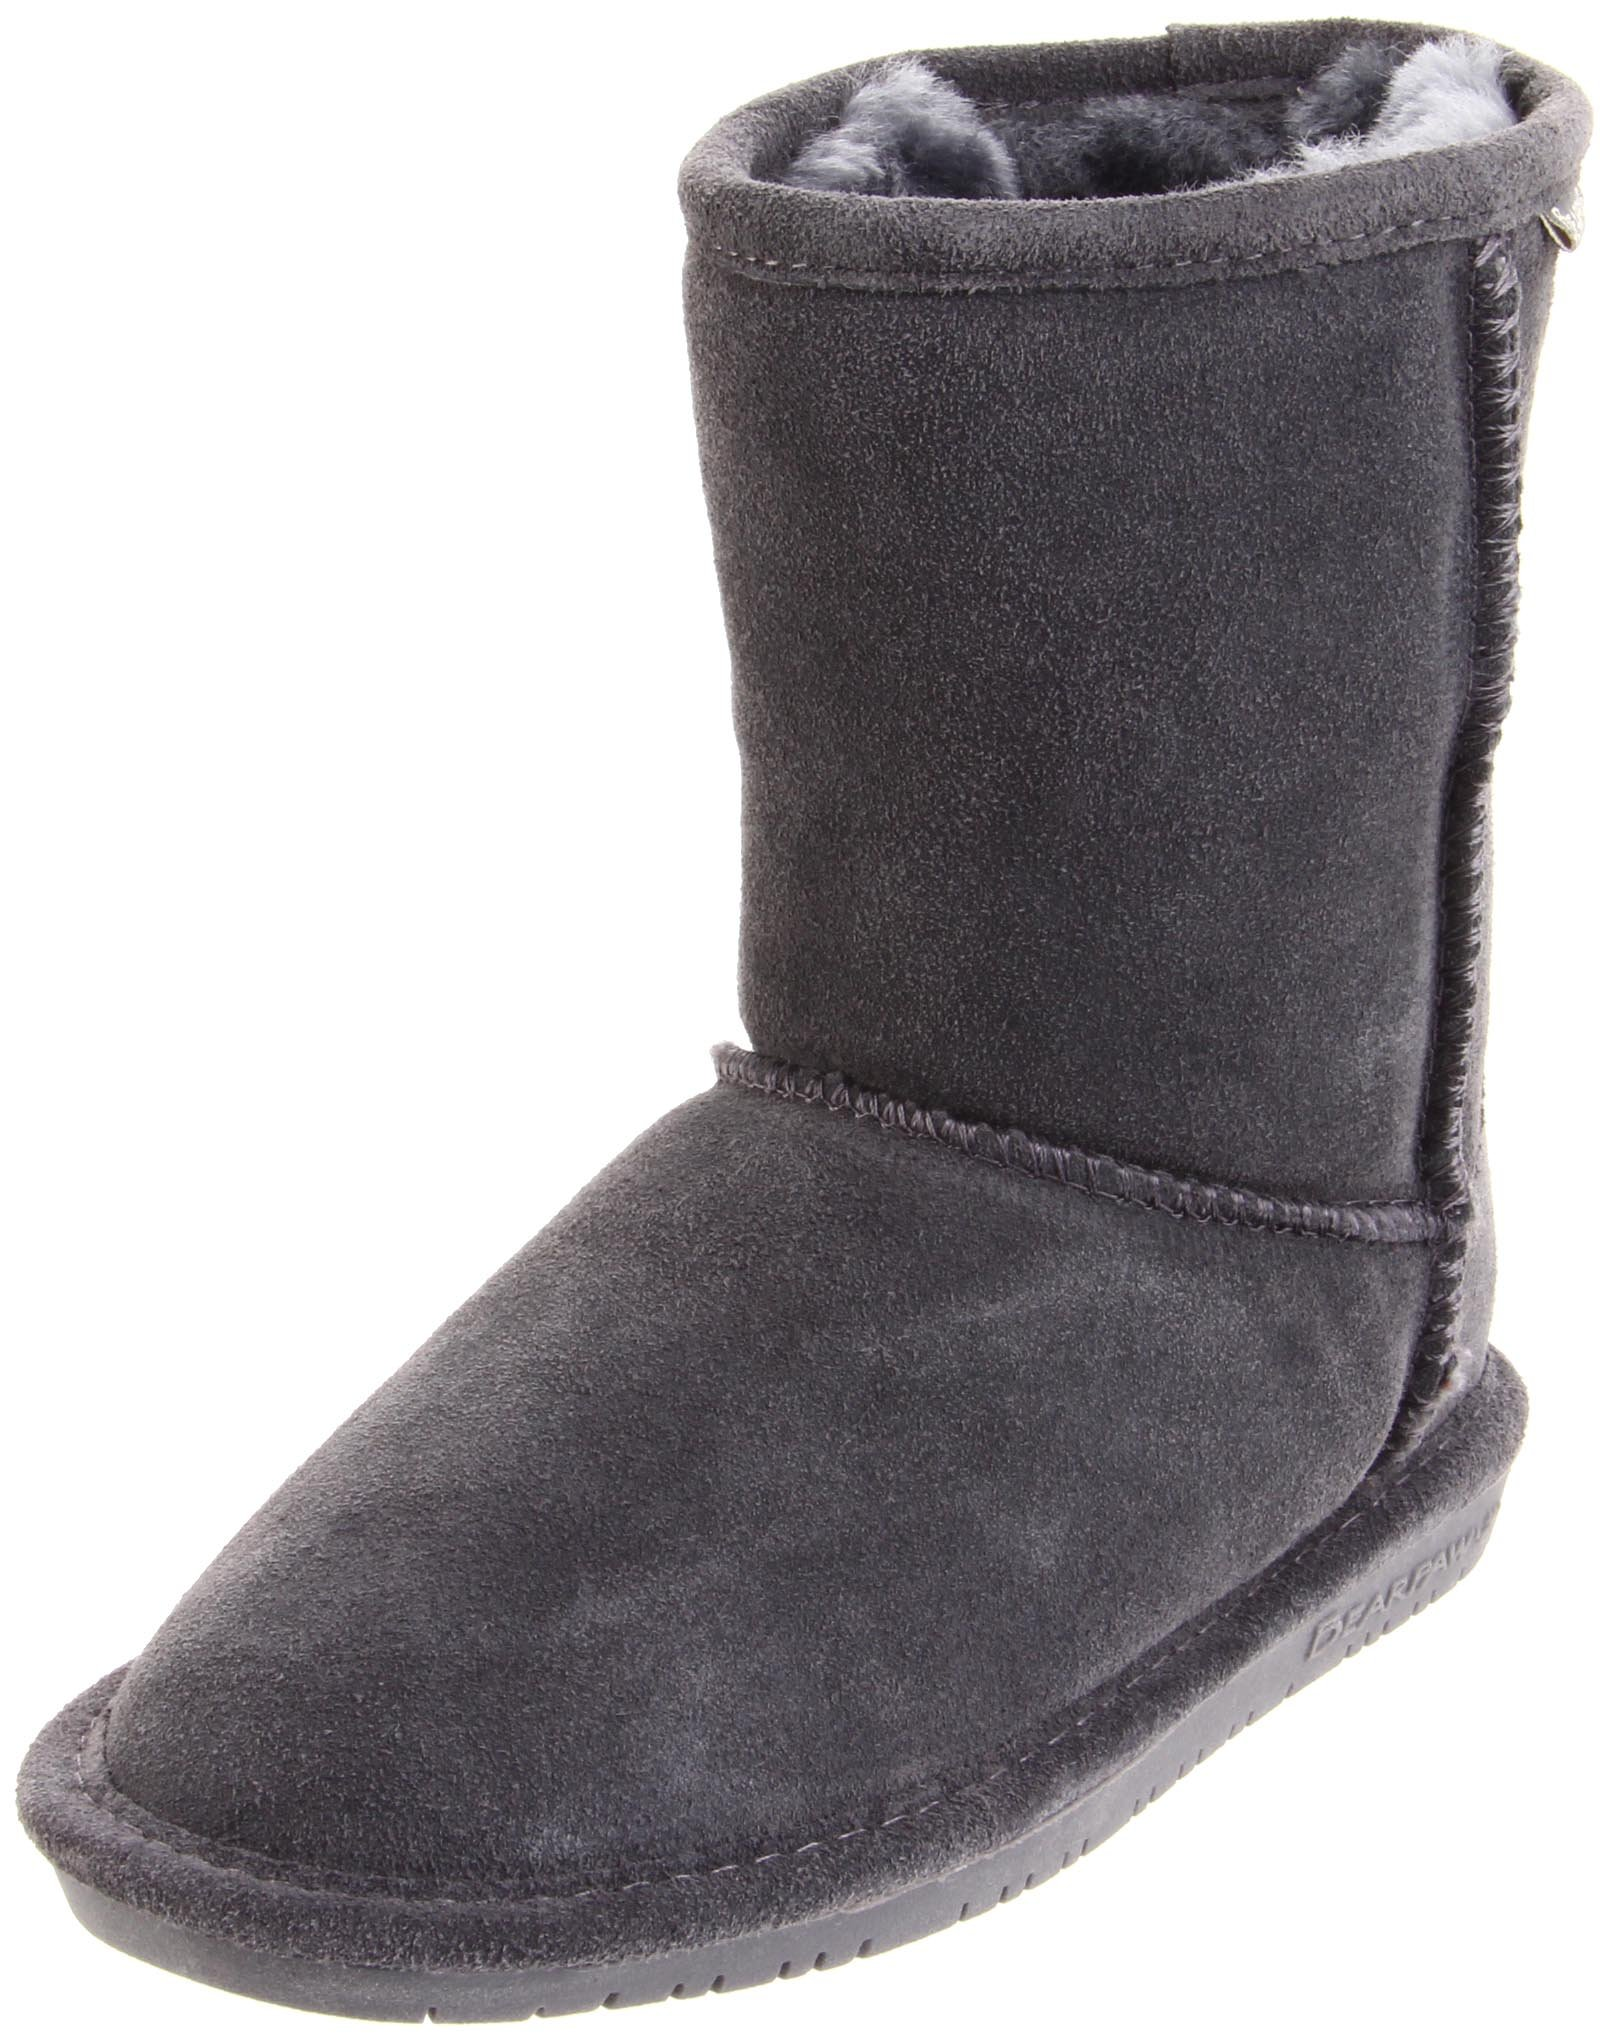 BEARPAW Emma 608T Shearling Boot (Toddler),Charcoal,8 M US Toddler